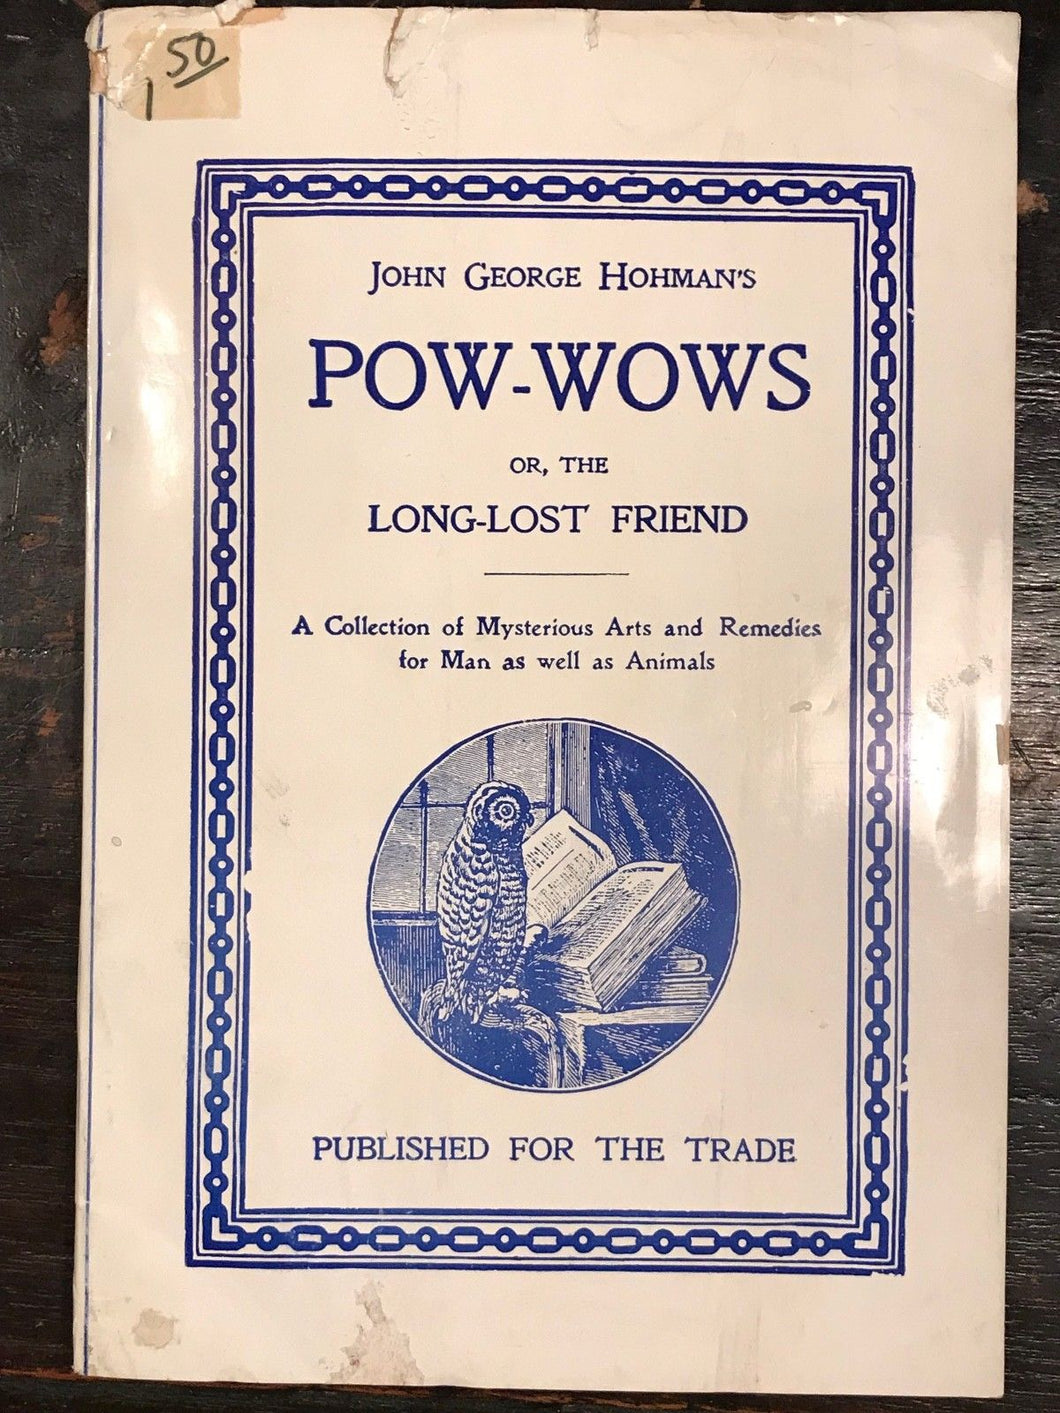 John George Hohman POW-WOWS Long-Lost Friend: Mysterious Arts Remedies - 1950s